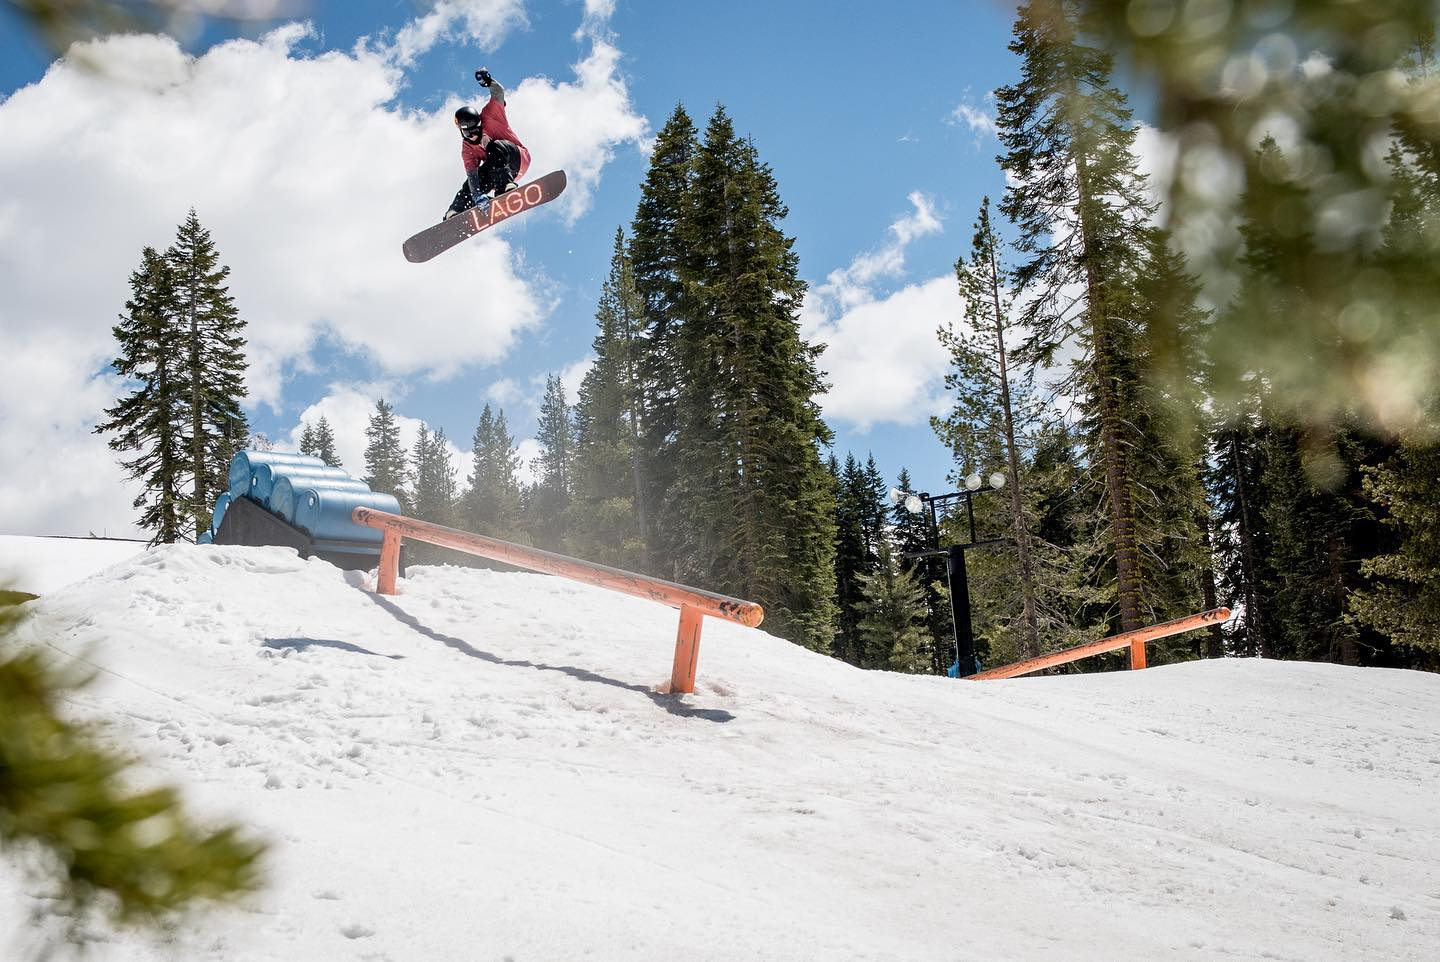 Image of a snowboarder catching air from a jump at the terrain park at Boreal Mountain Resort in California